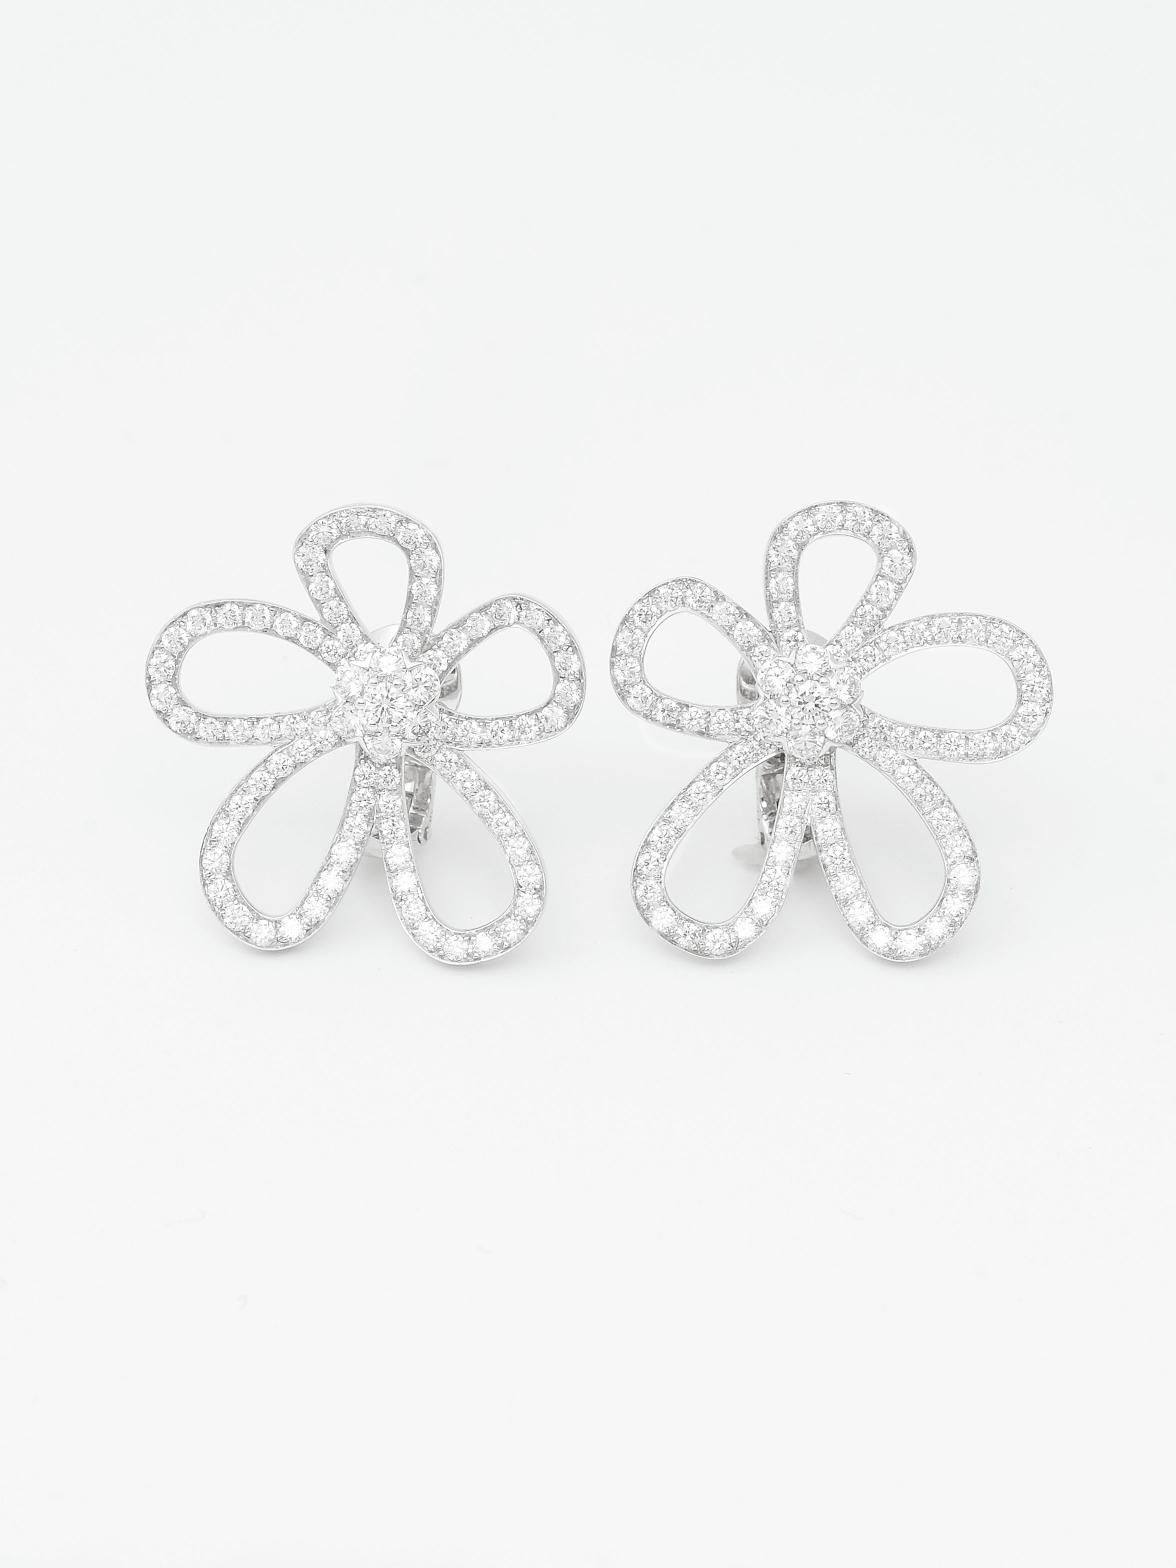 a171c9099a6 Van Cleef   Arpels 18K White Gold Flower Lace Large Ear Clips at London  Jewelers!